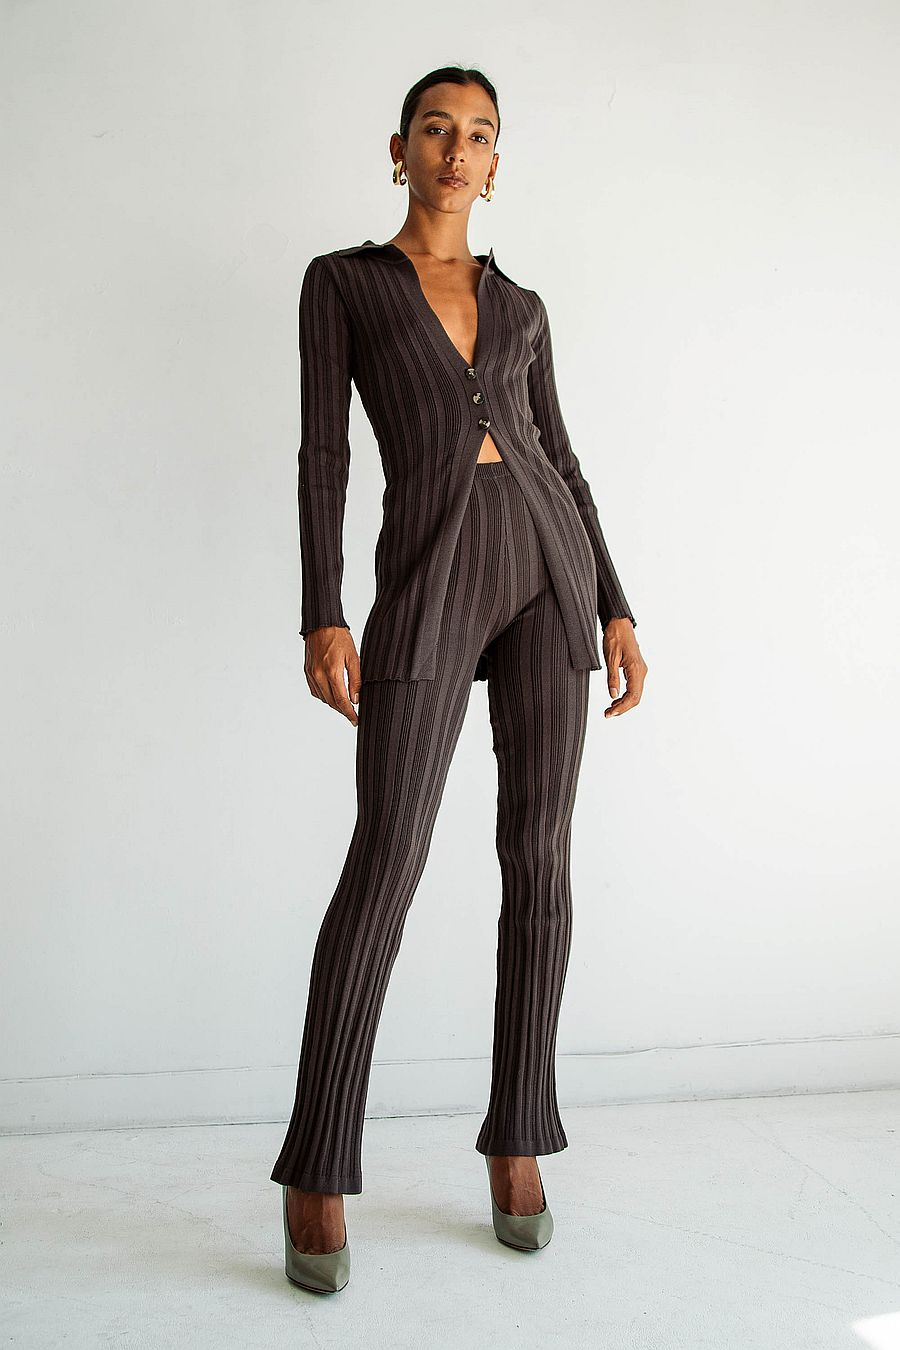 The Line by K Daisy Pant